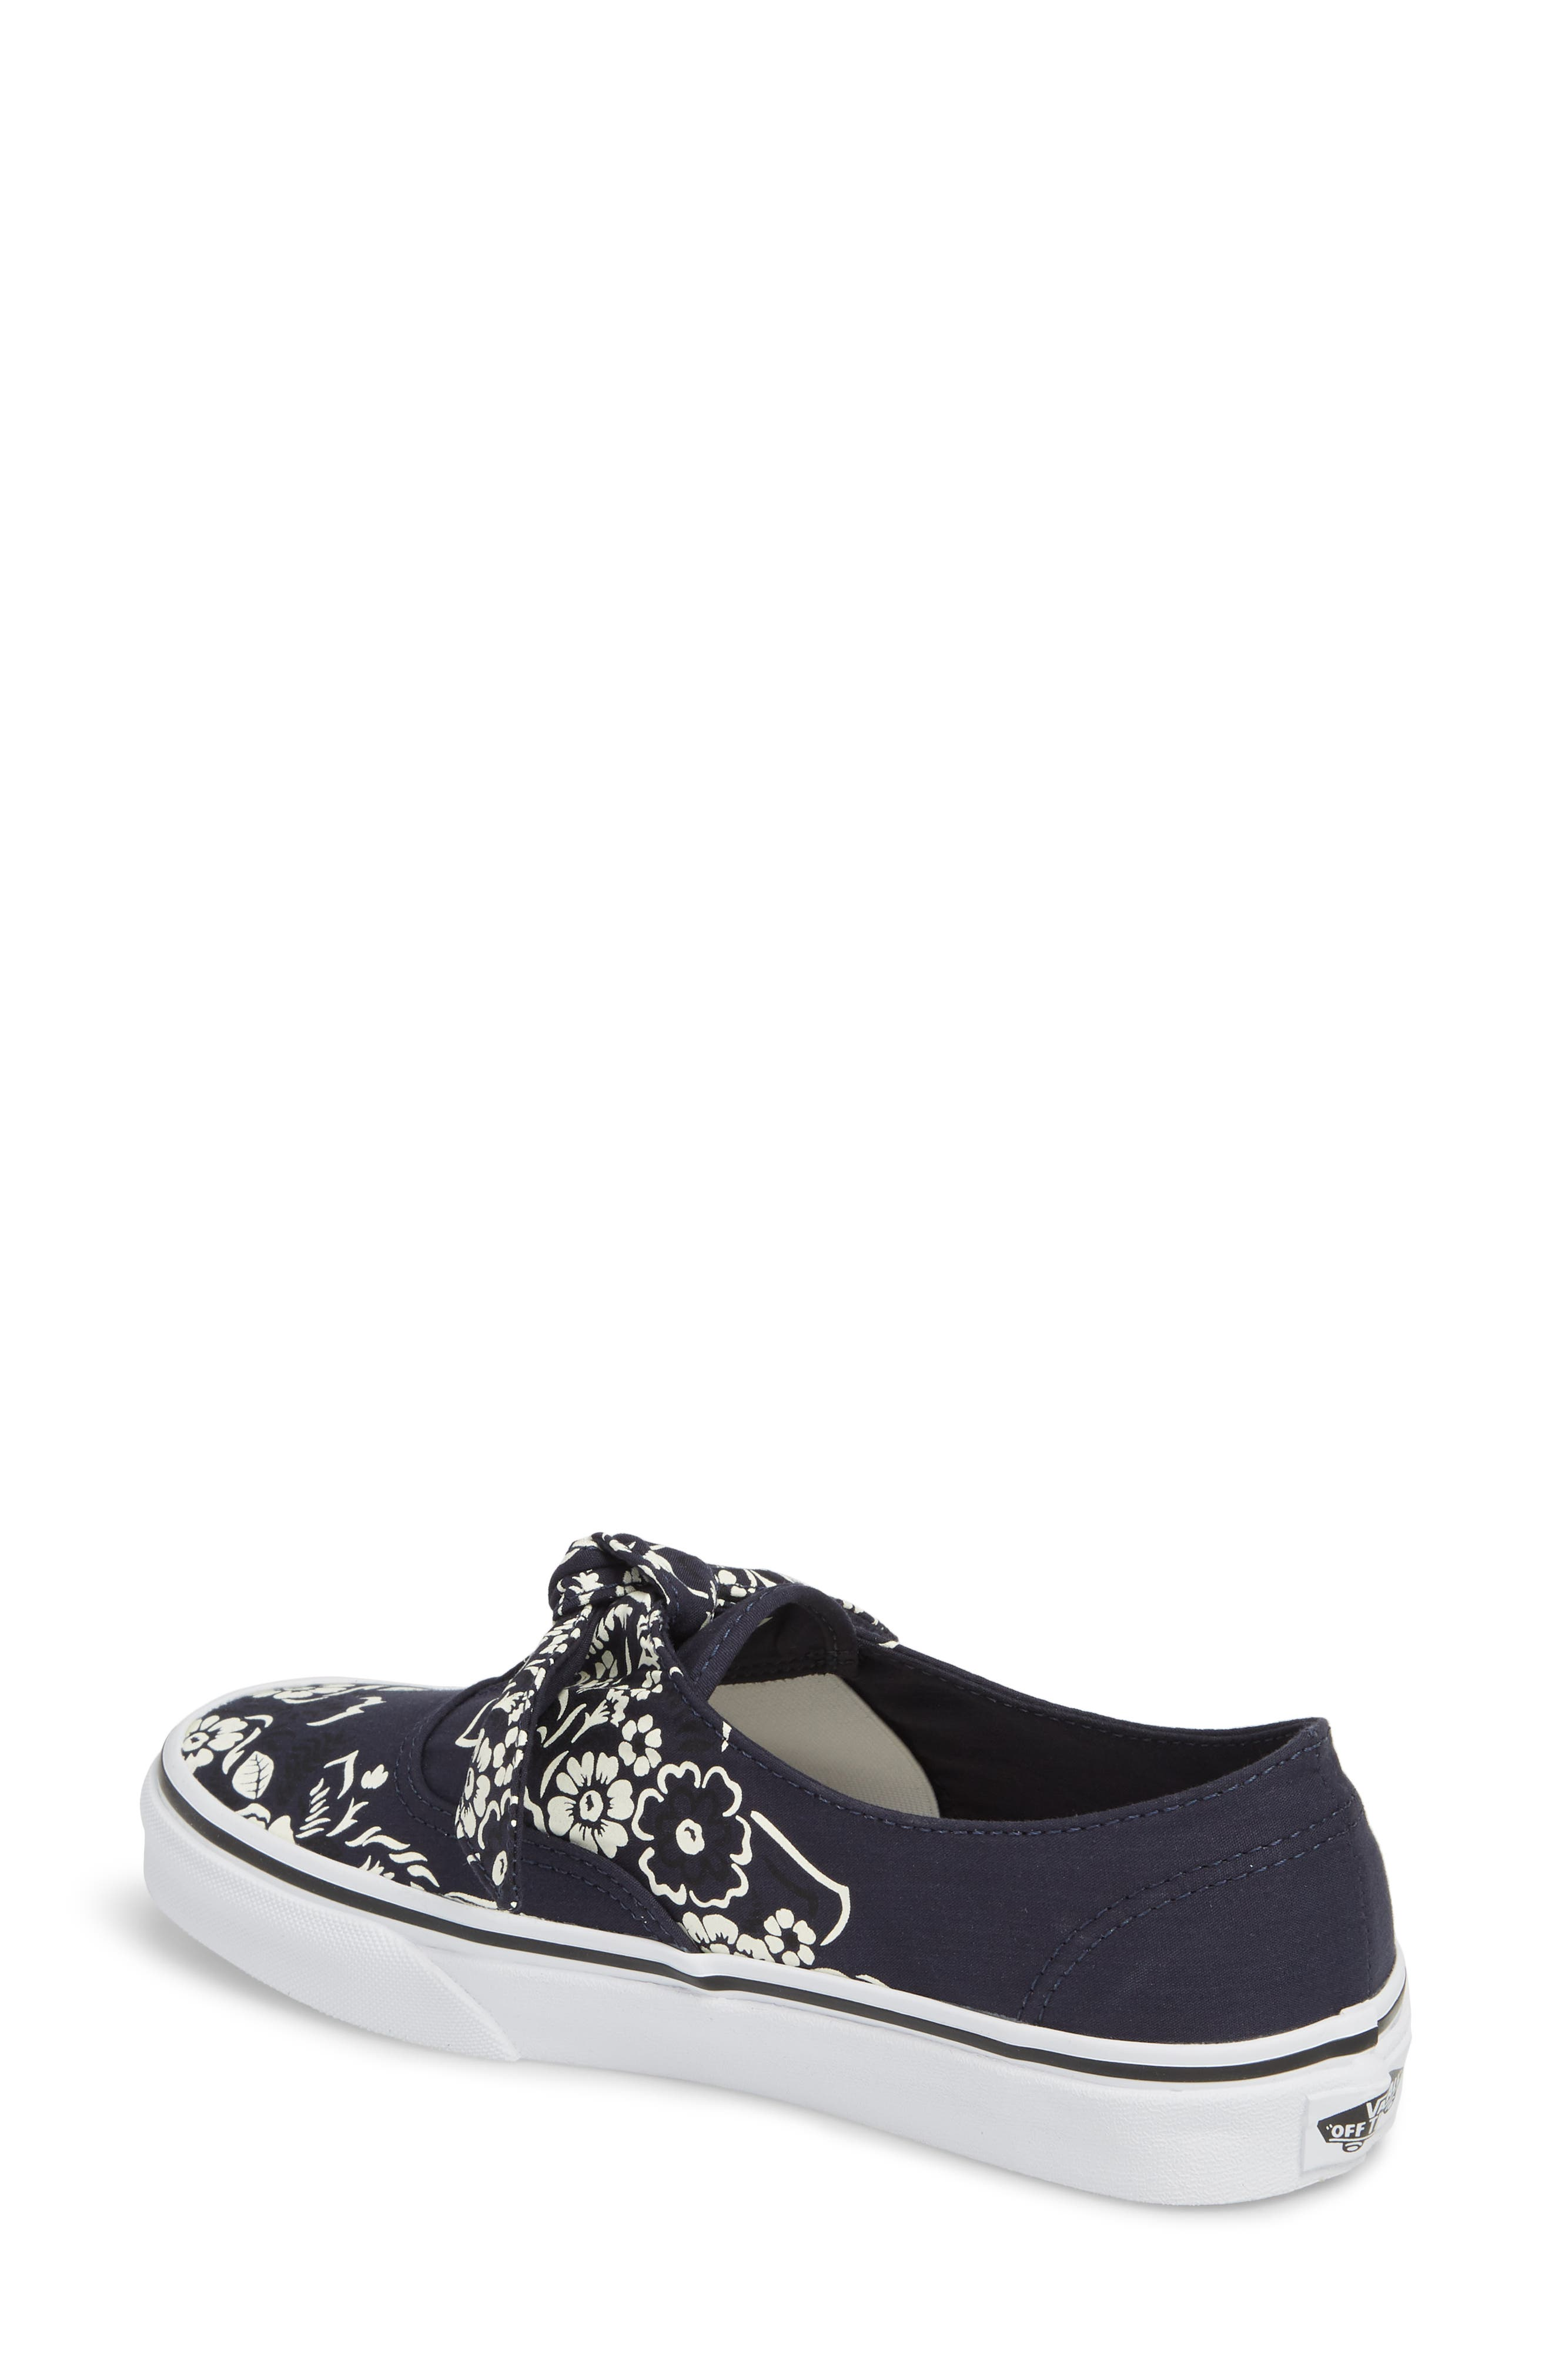 UA Authentic Knotted Floral Bandana Slip-On Sneaker,                             Alternate thumbnail 2, color,                             PARISIAN NIGHT/ TRUE WHITE